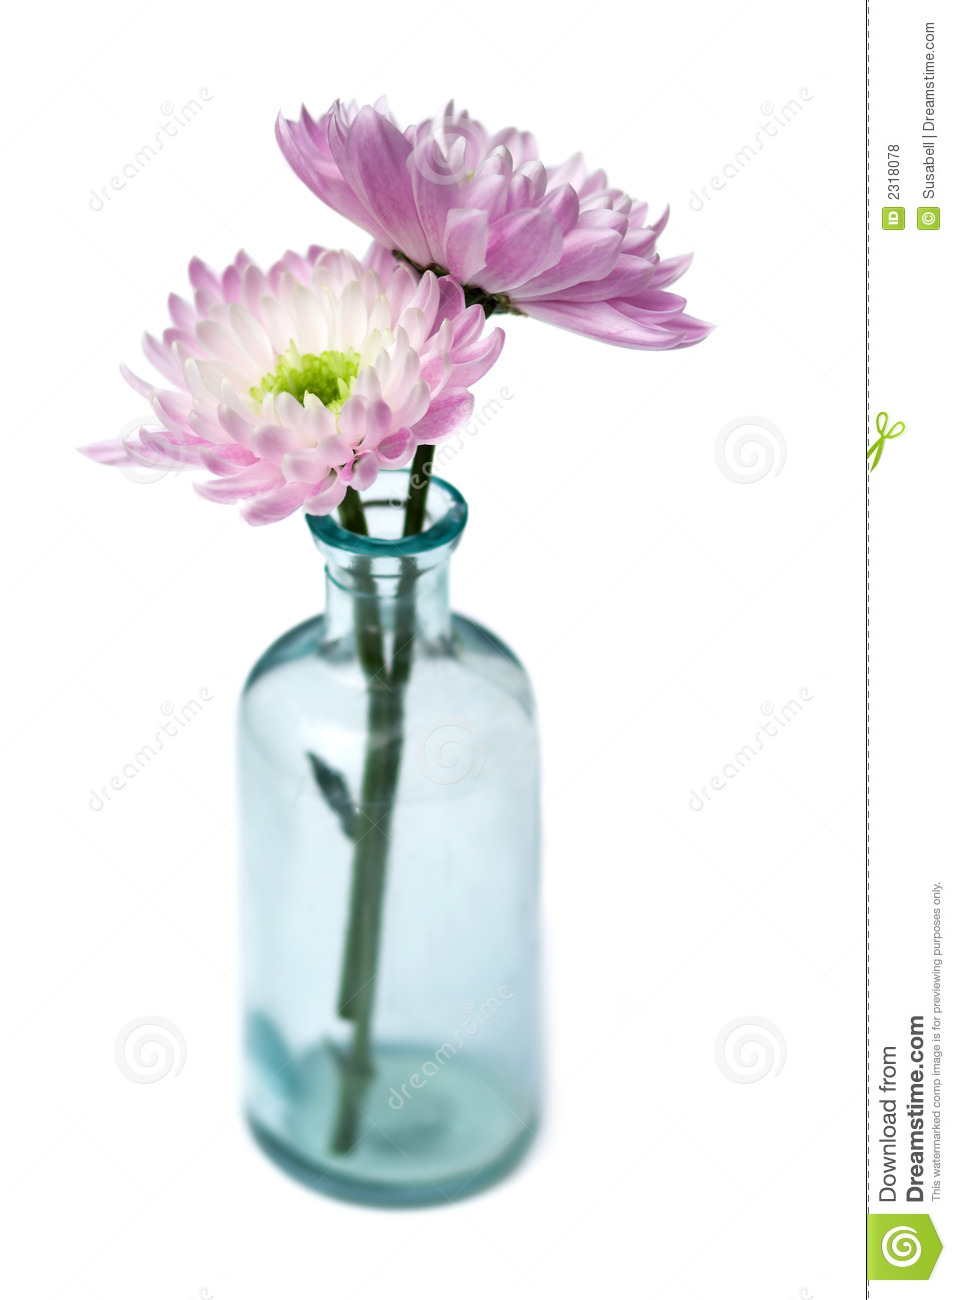 Two flowers in glass vase stock photo image of floral 2318078 two flowers in glass vase reviewsmspy